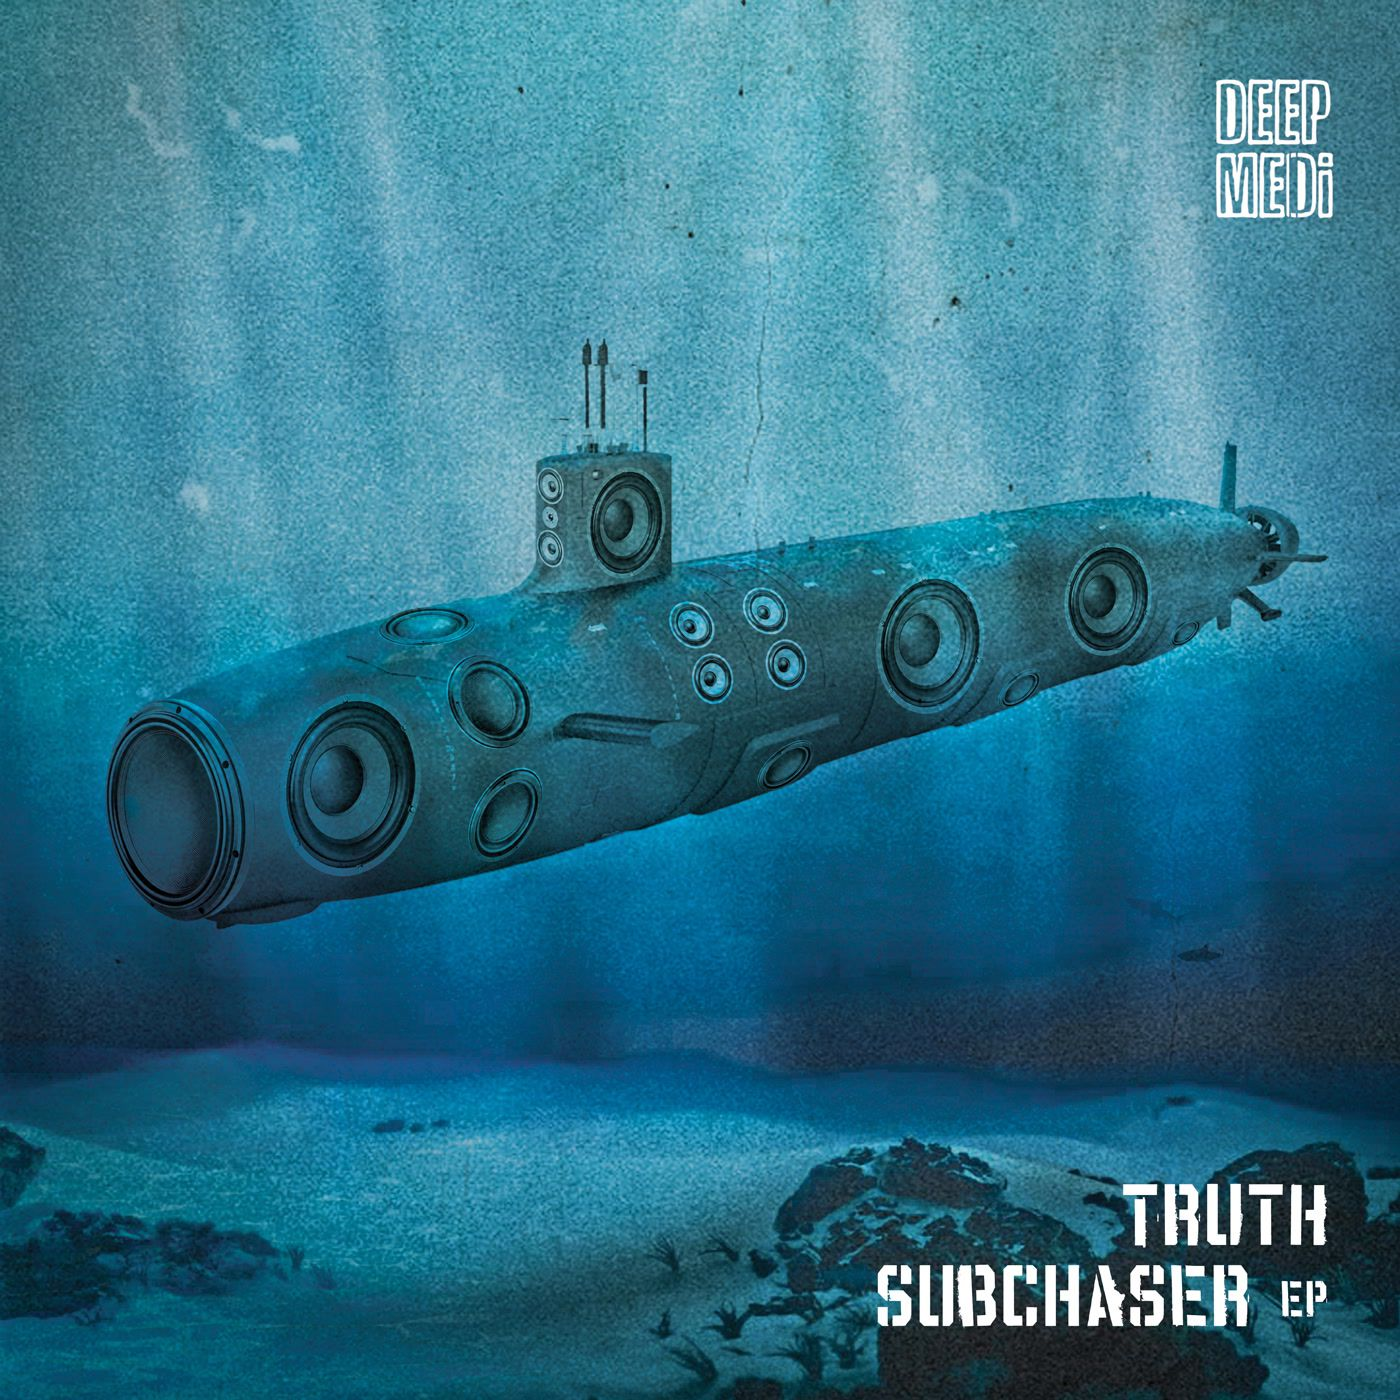 Truth - Subchaser